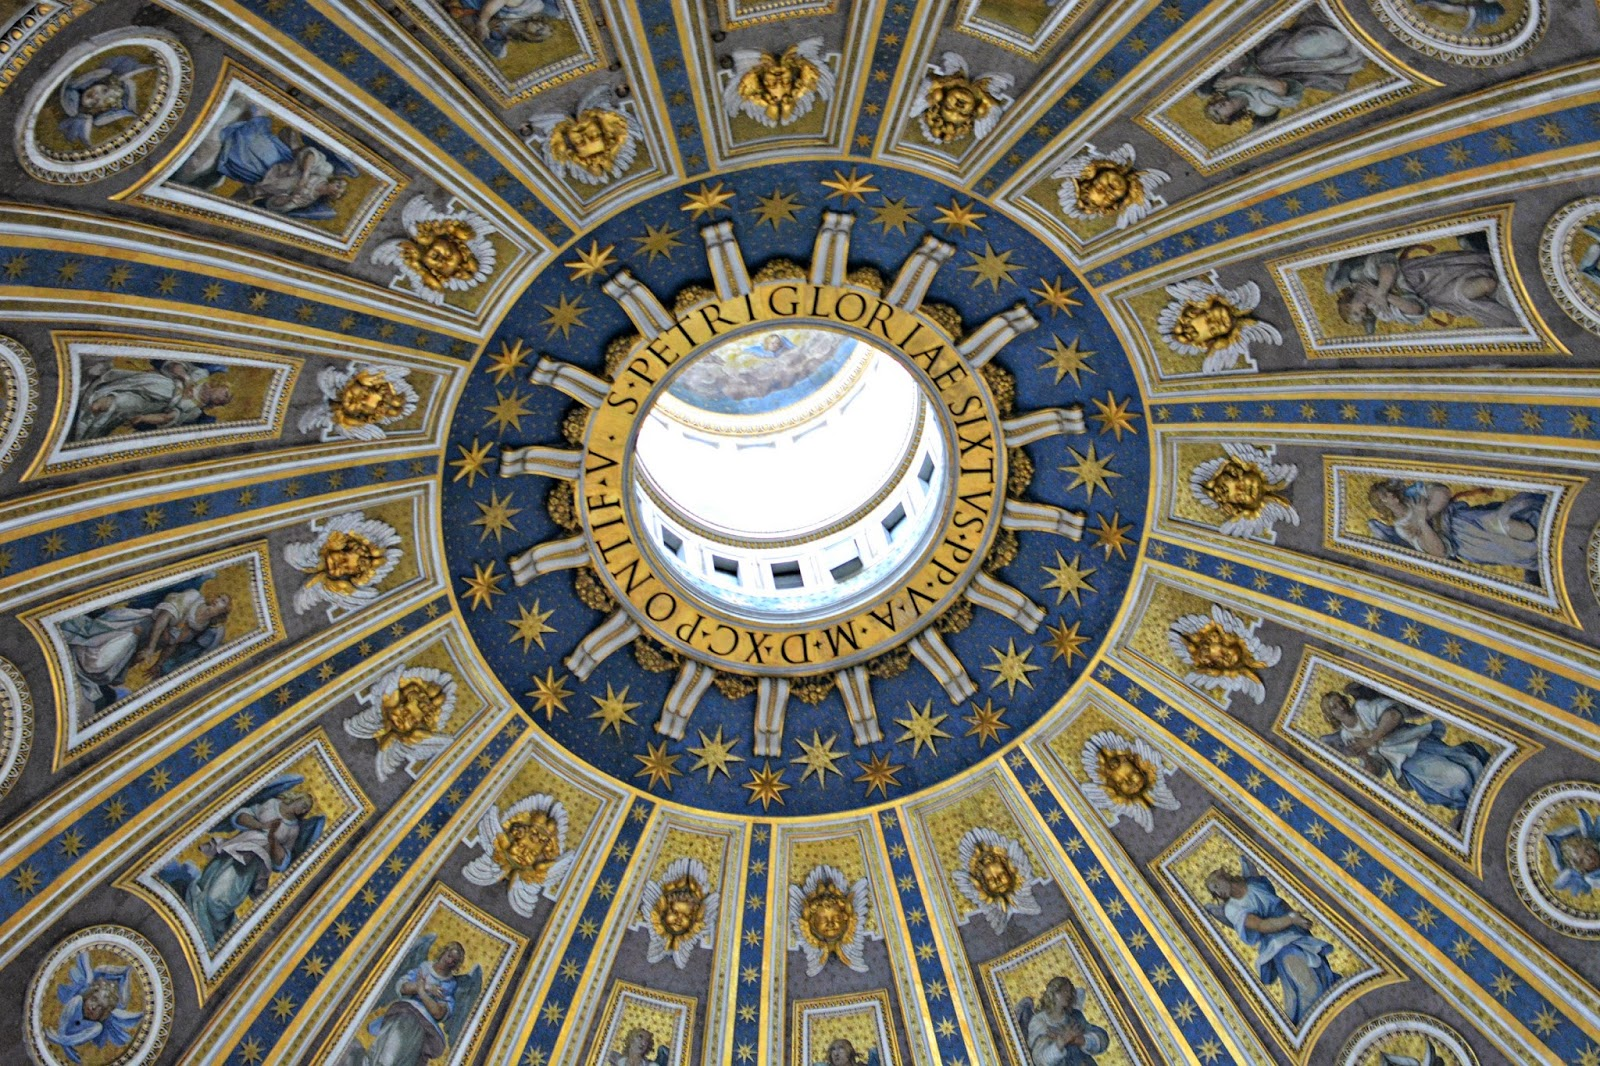 Ceiling of St Peter's Basilica dome